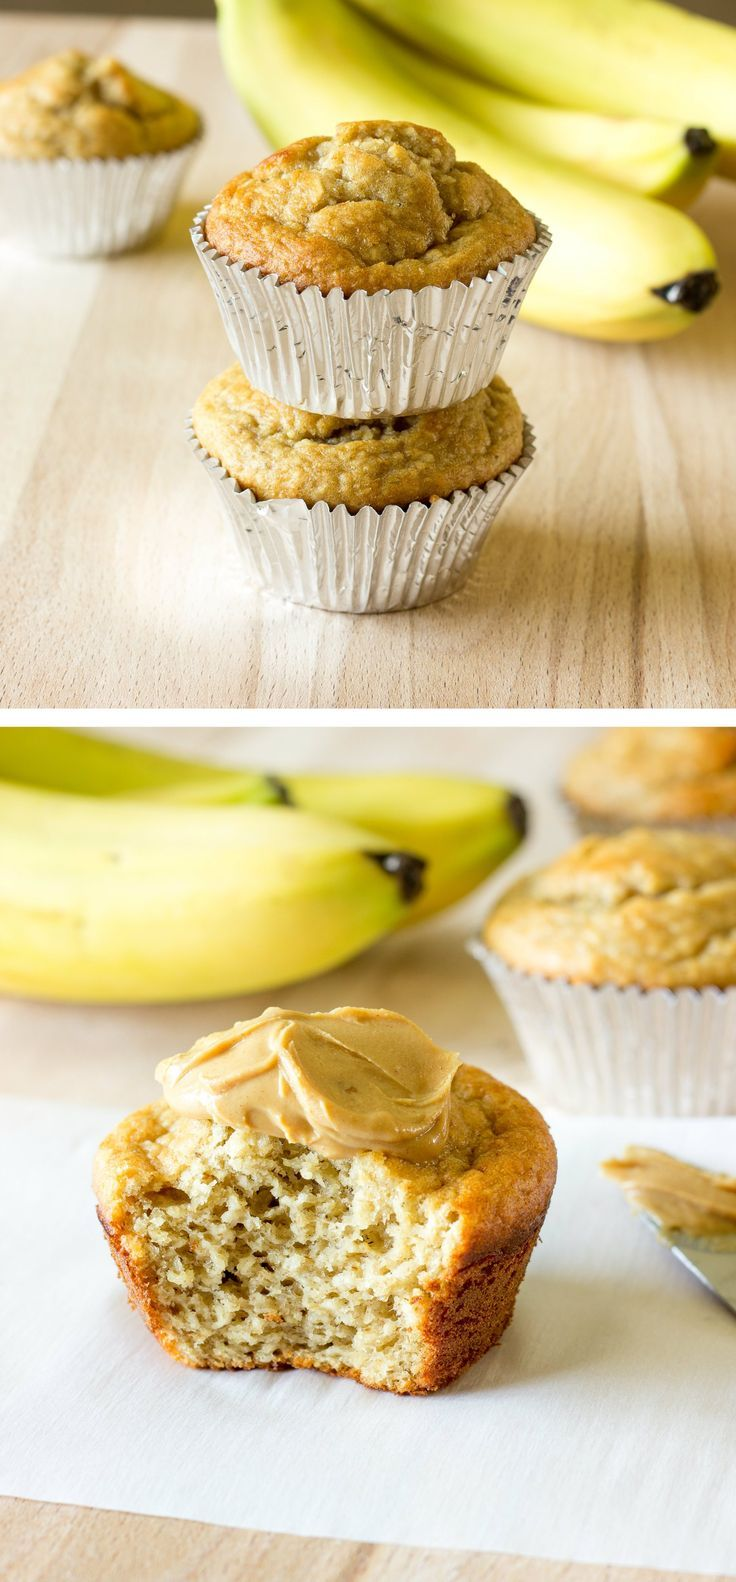 GF.  No flour or oil.  These muffins are made with Greek yogurt and PB so they are a good source of protein.